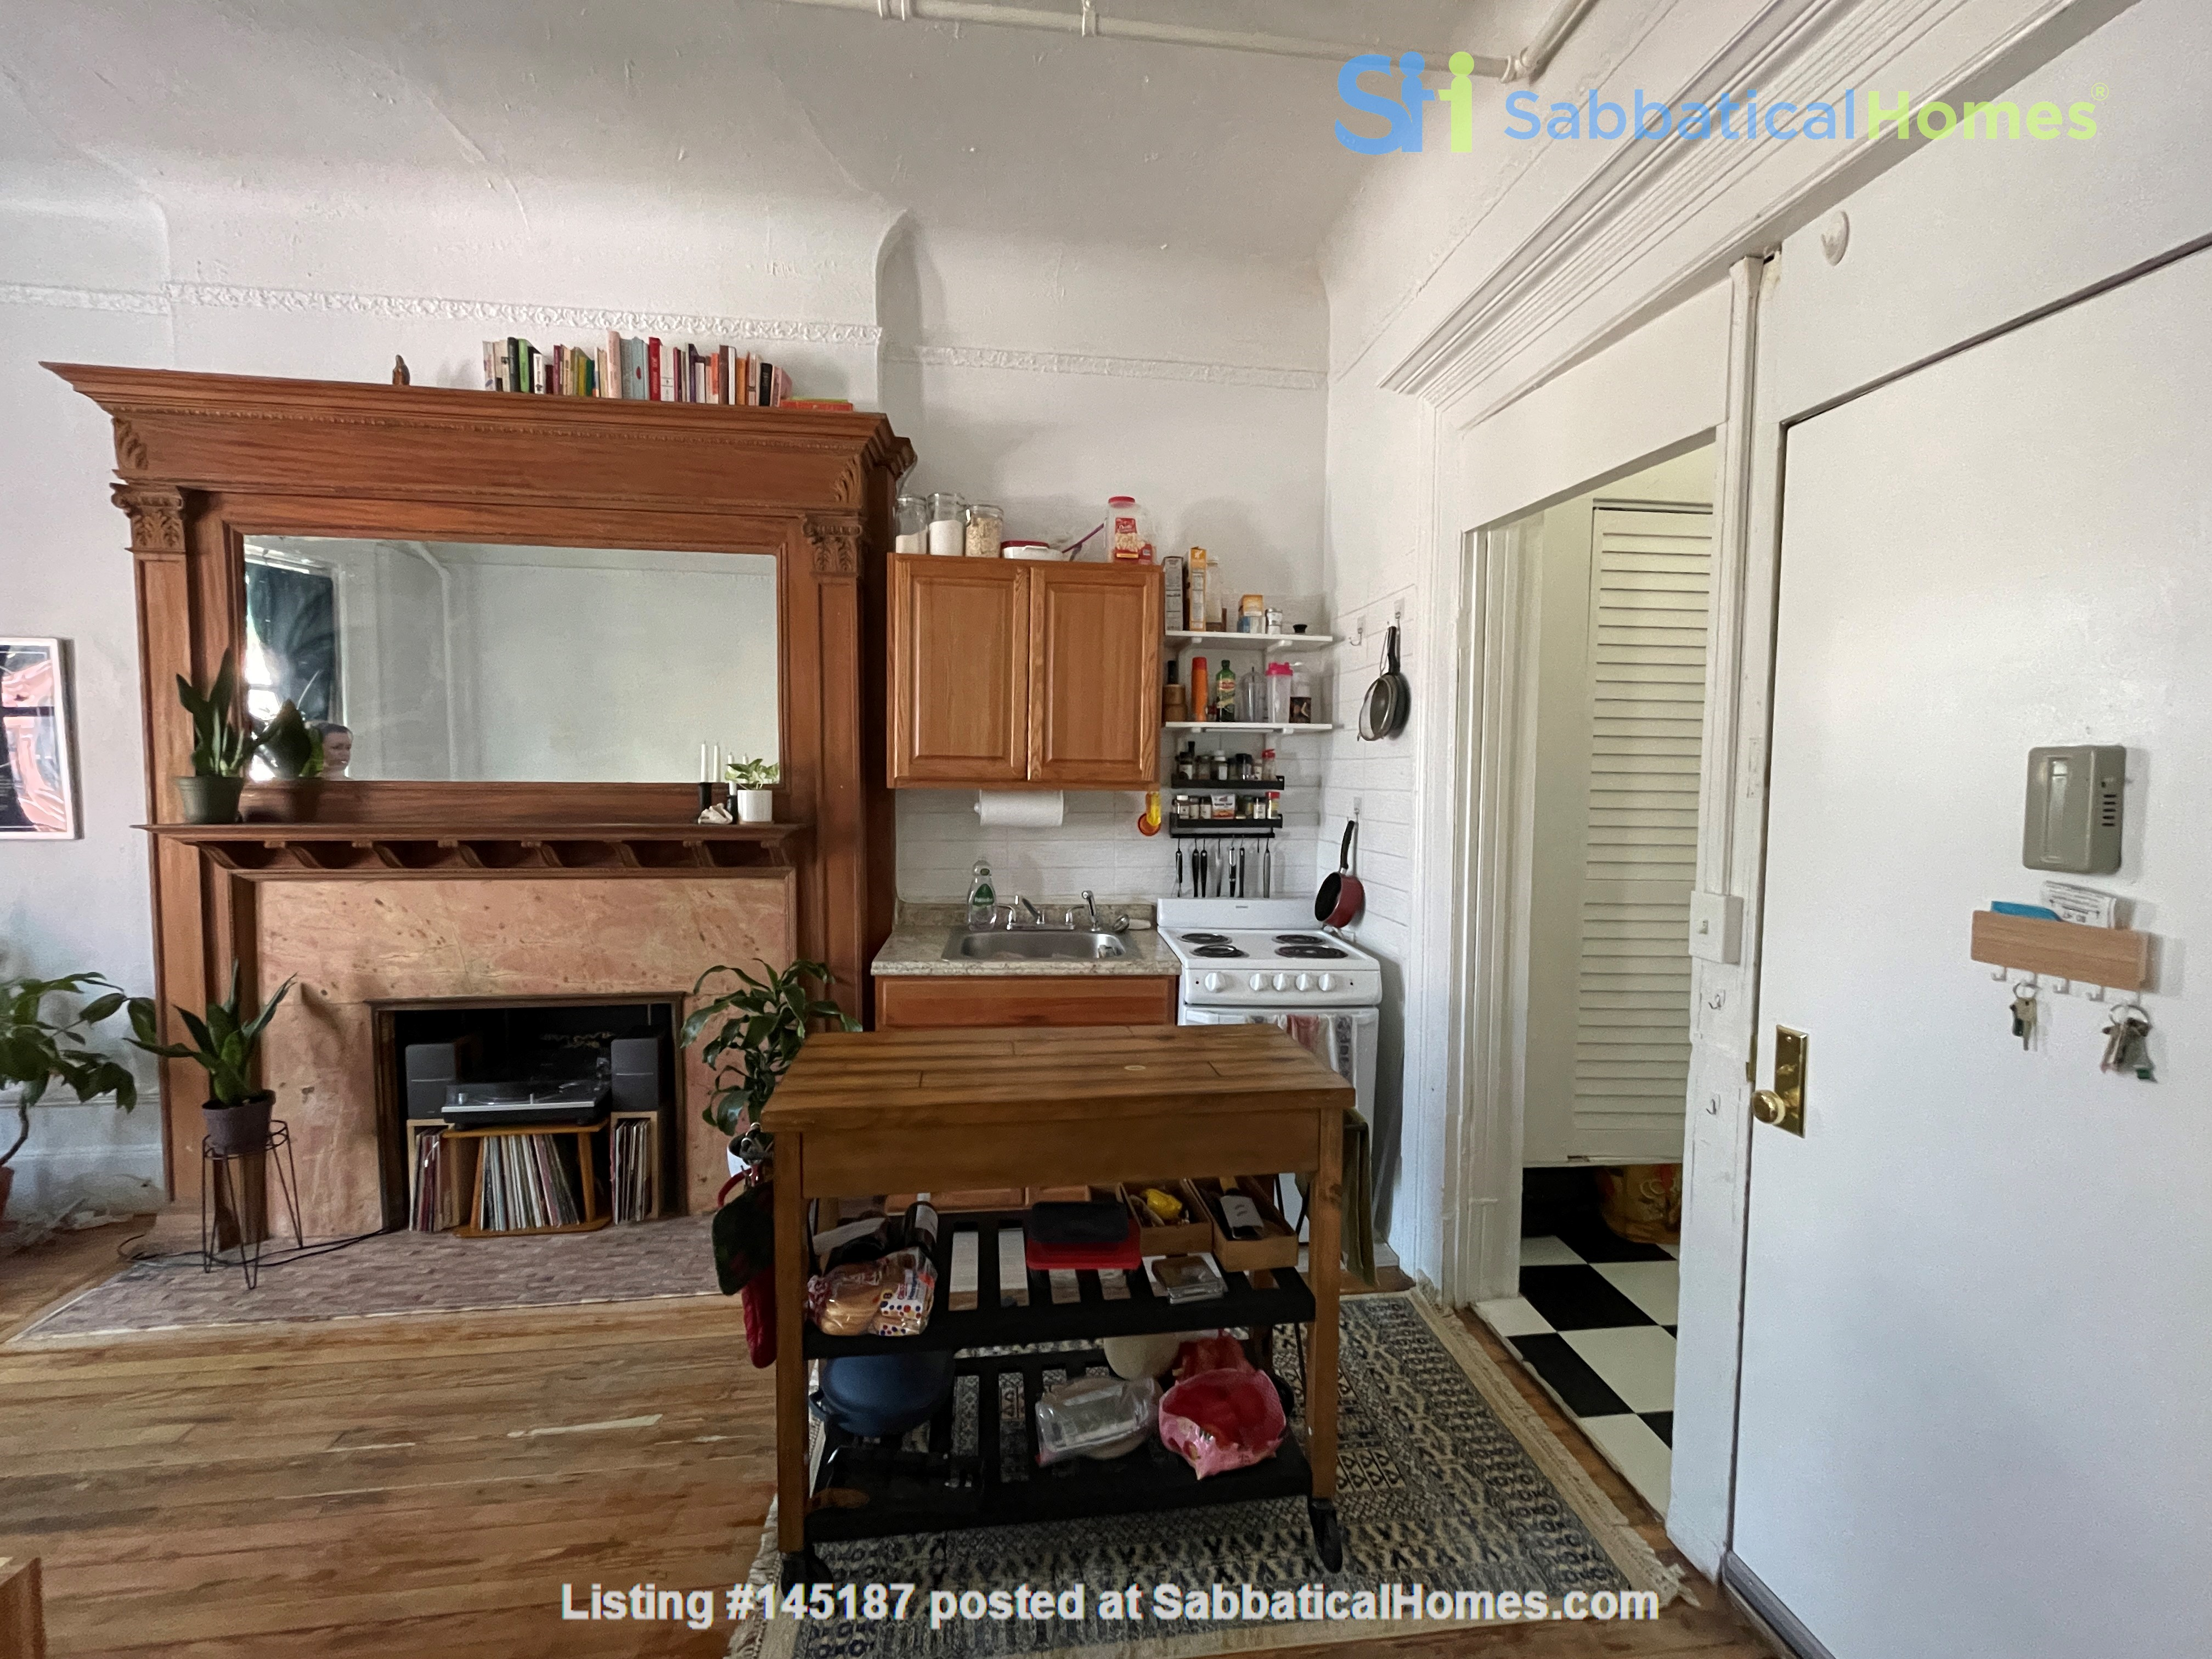 Historic South Harlem Studio with Balcony, short walk to Central Park! Home Rental in New York 5